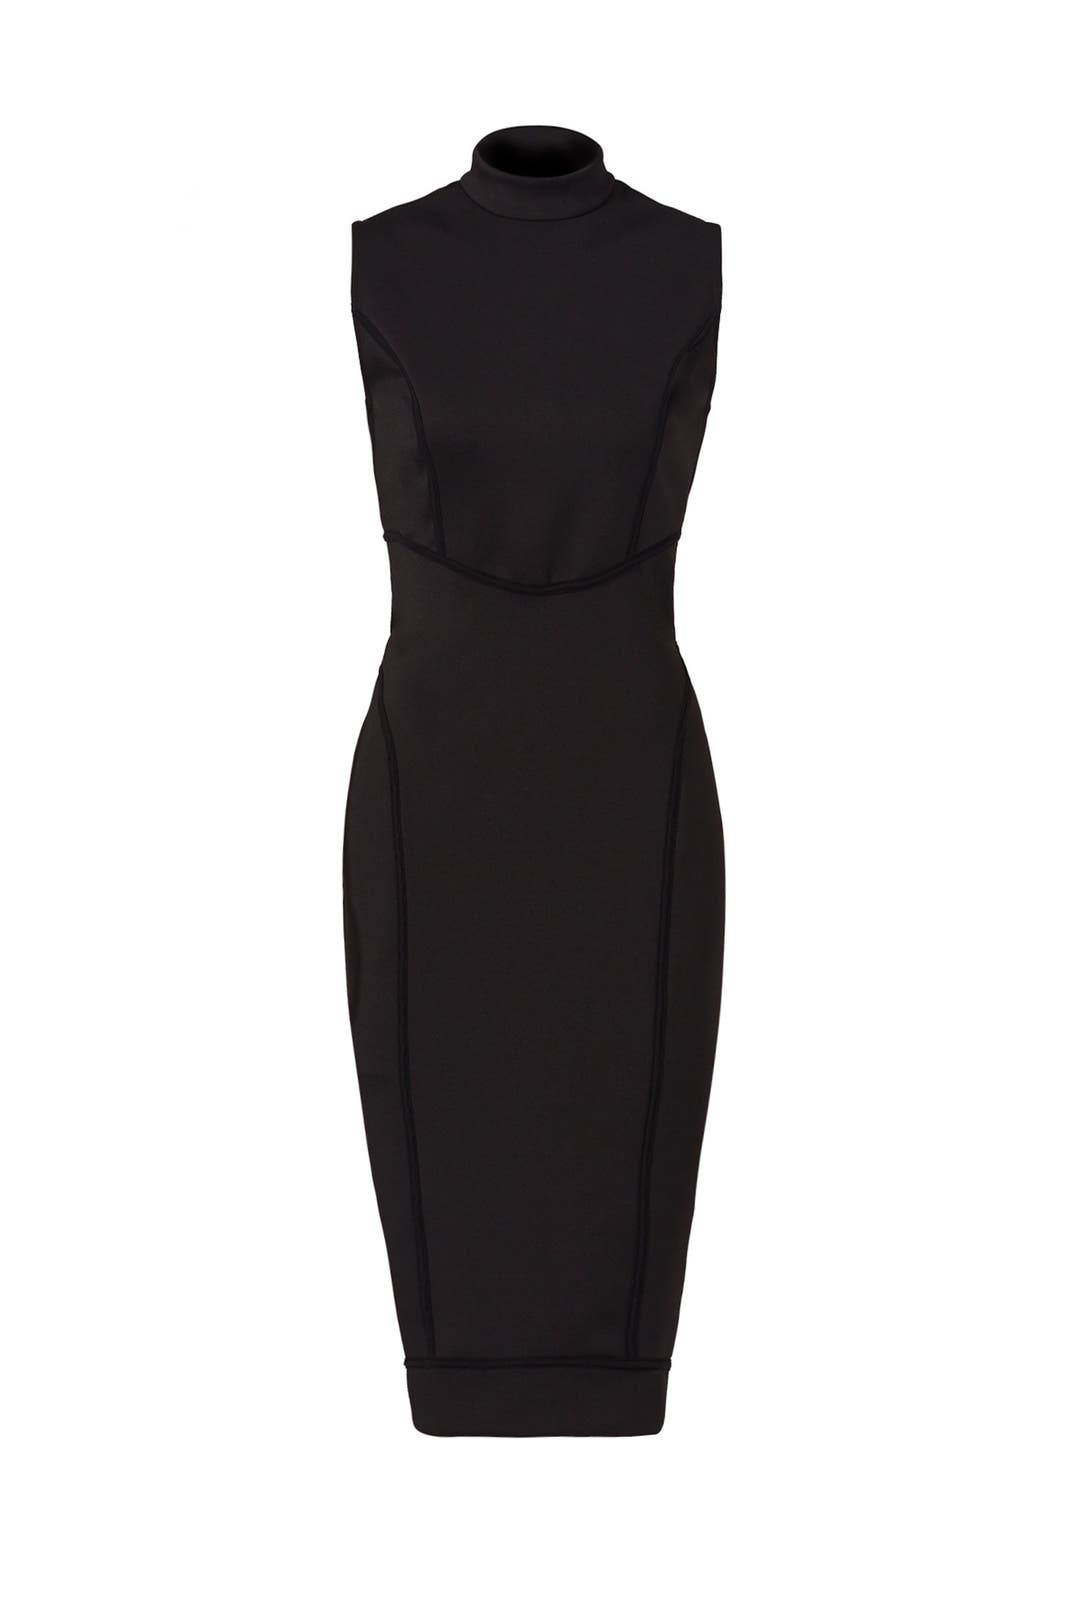 Long black dress xs scuba